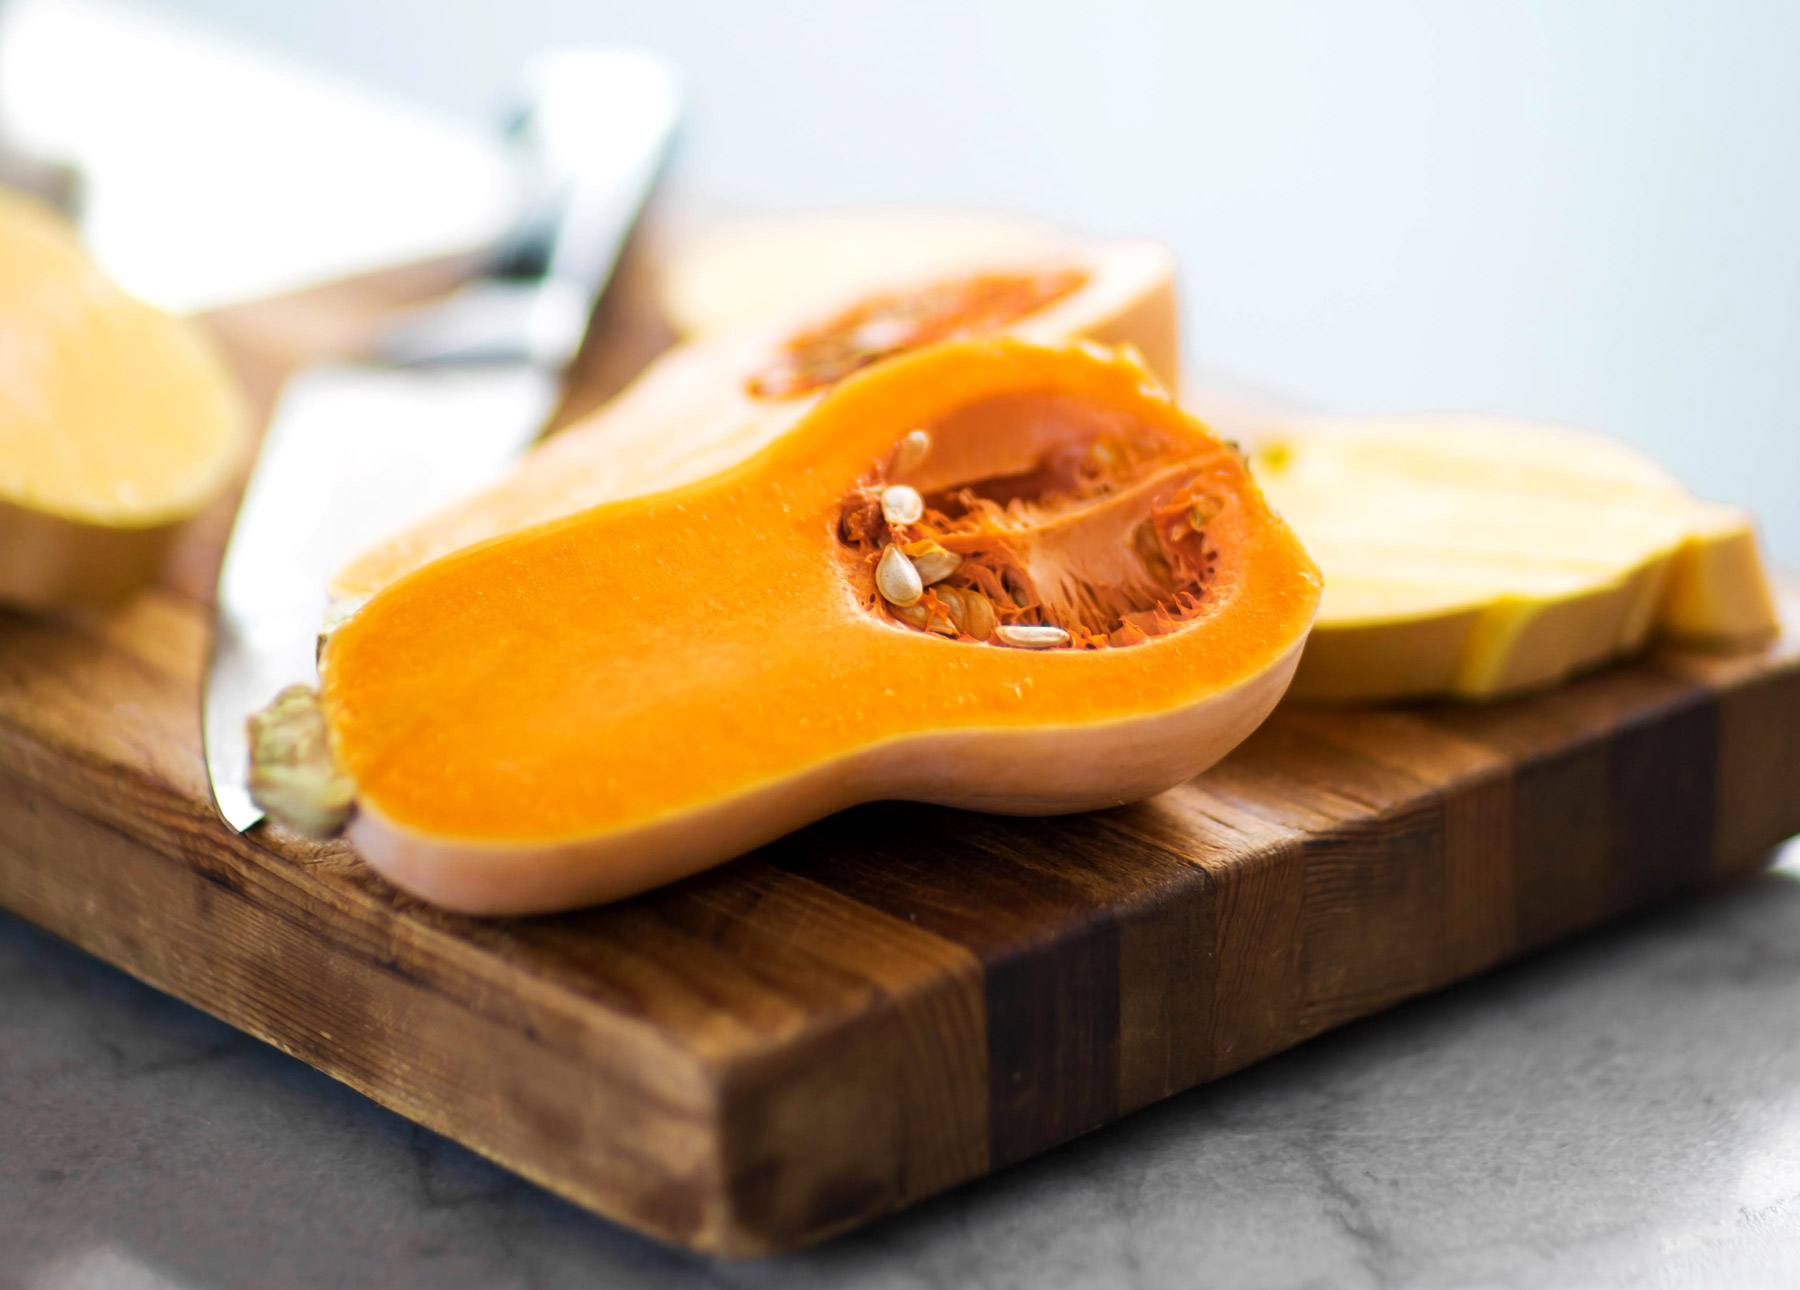 A sliced butternut squash.